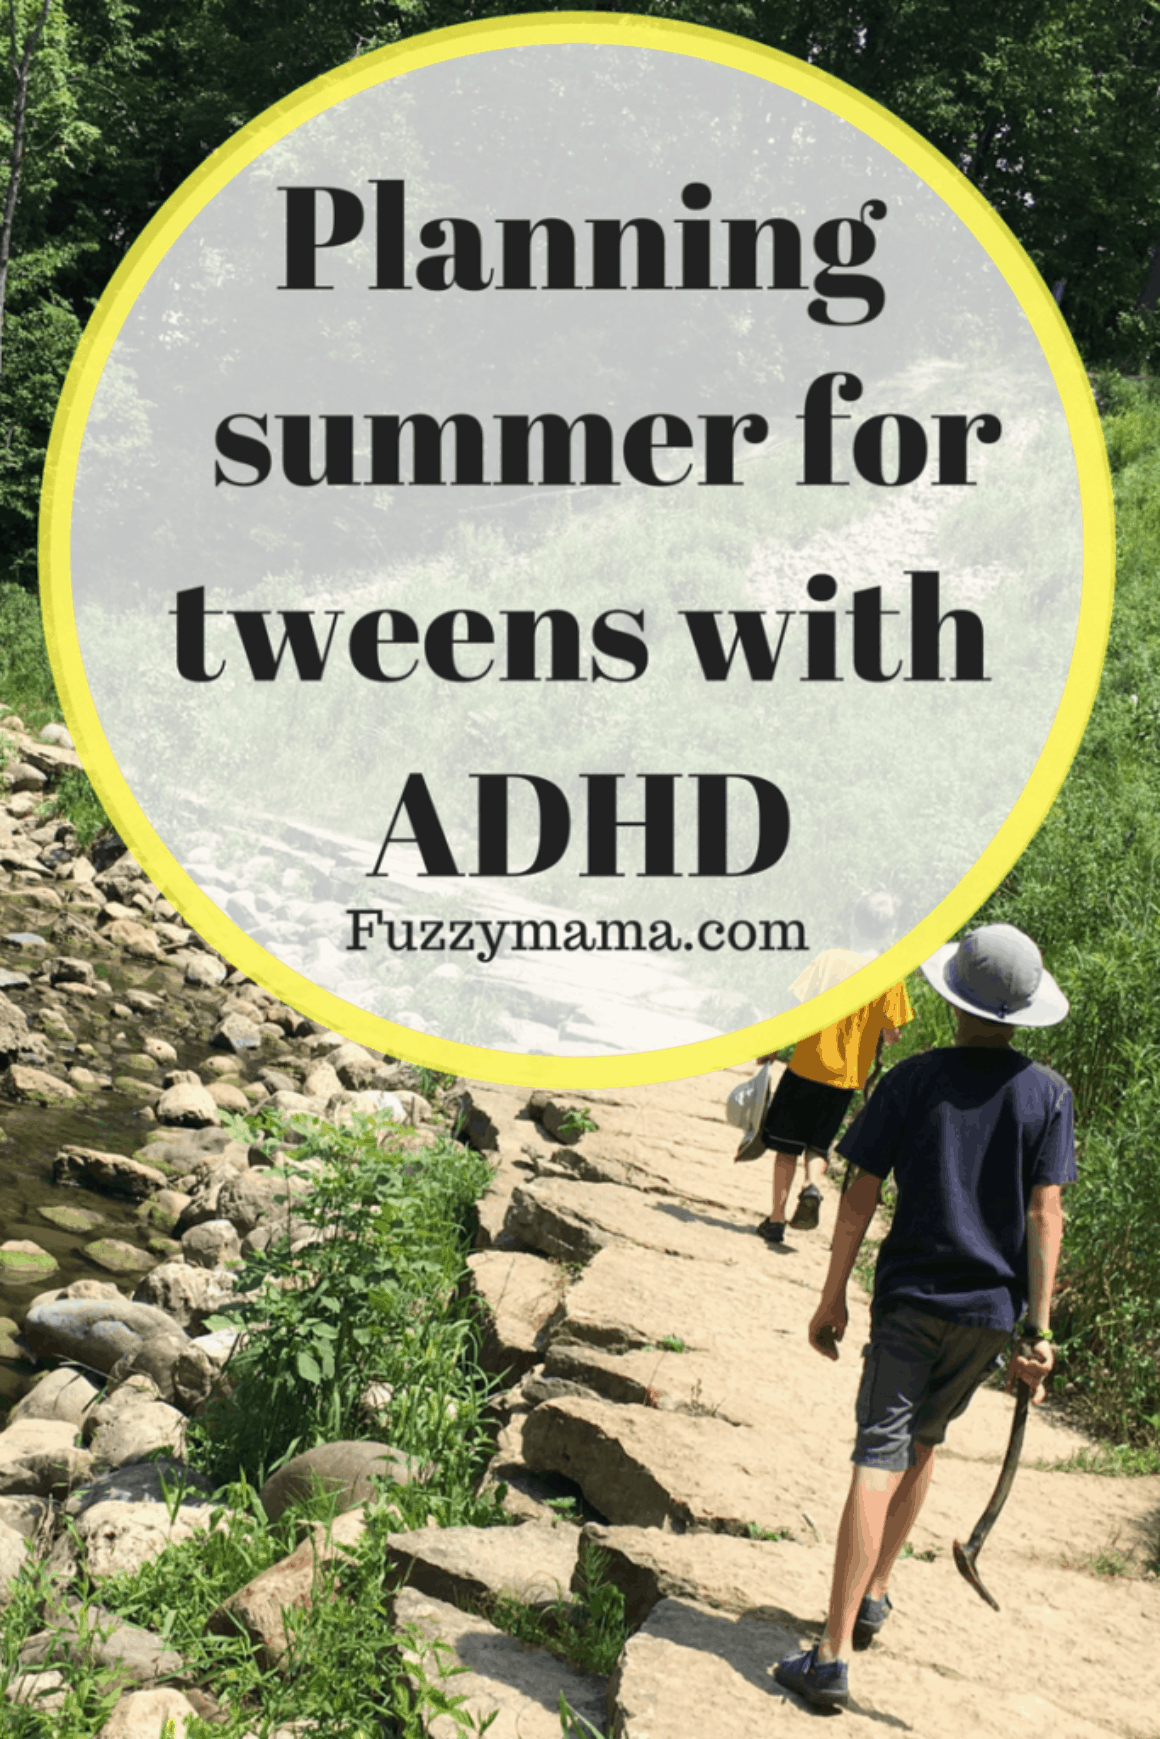 Planning summer for tweens with ADHD